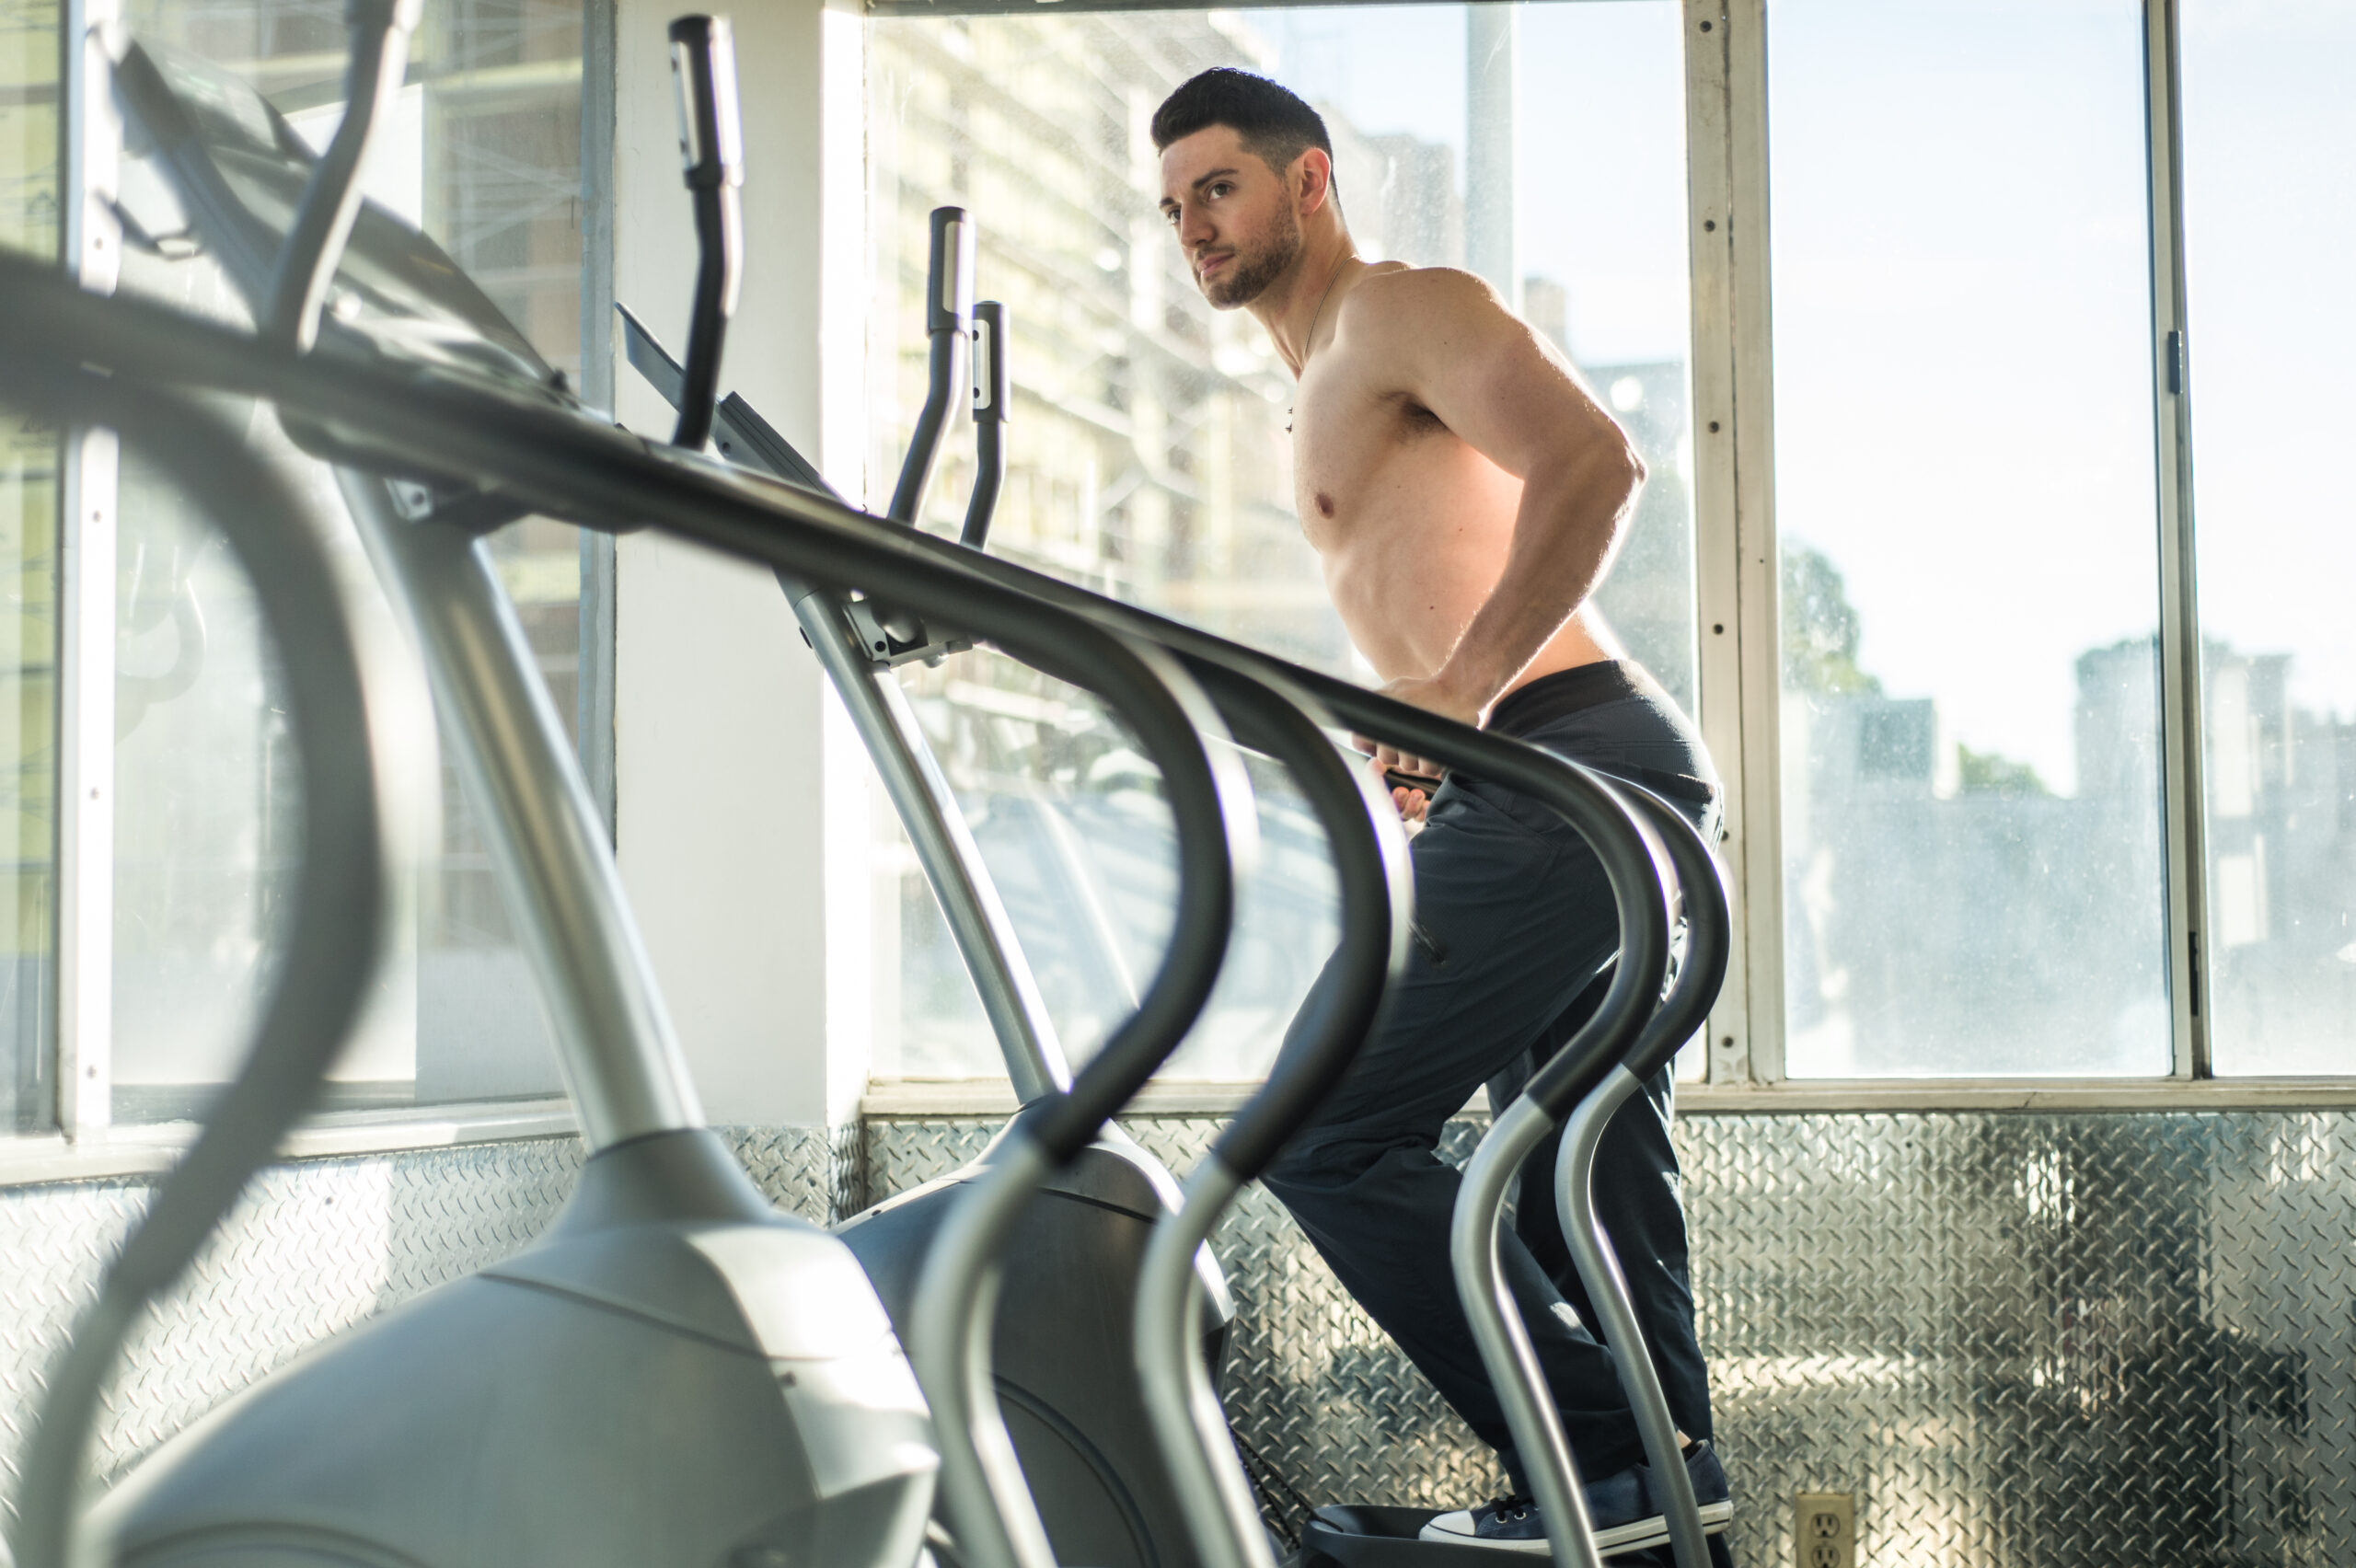 """Zone 2 Cardio: The Only True """"Fat-Burning"""" Exercise"""